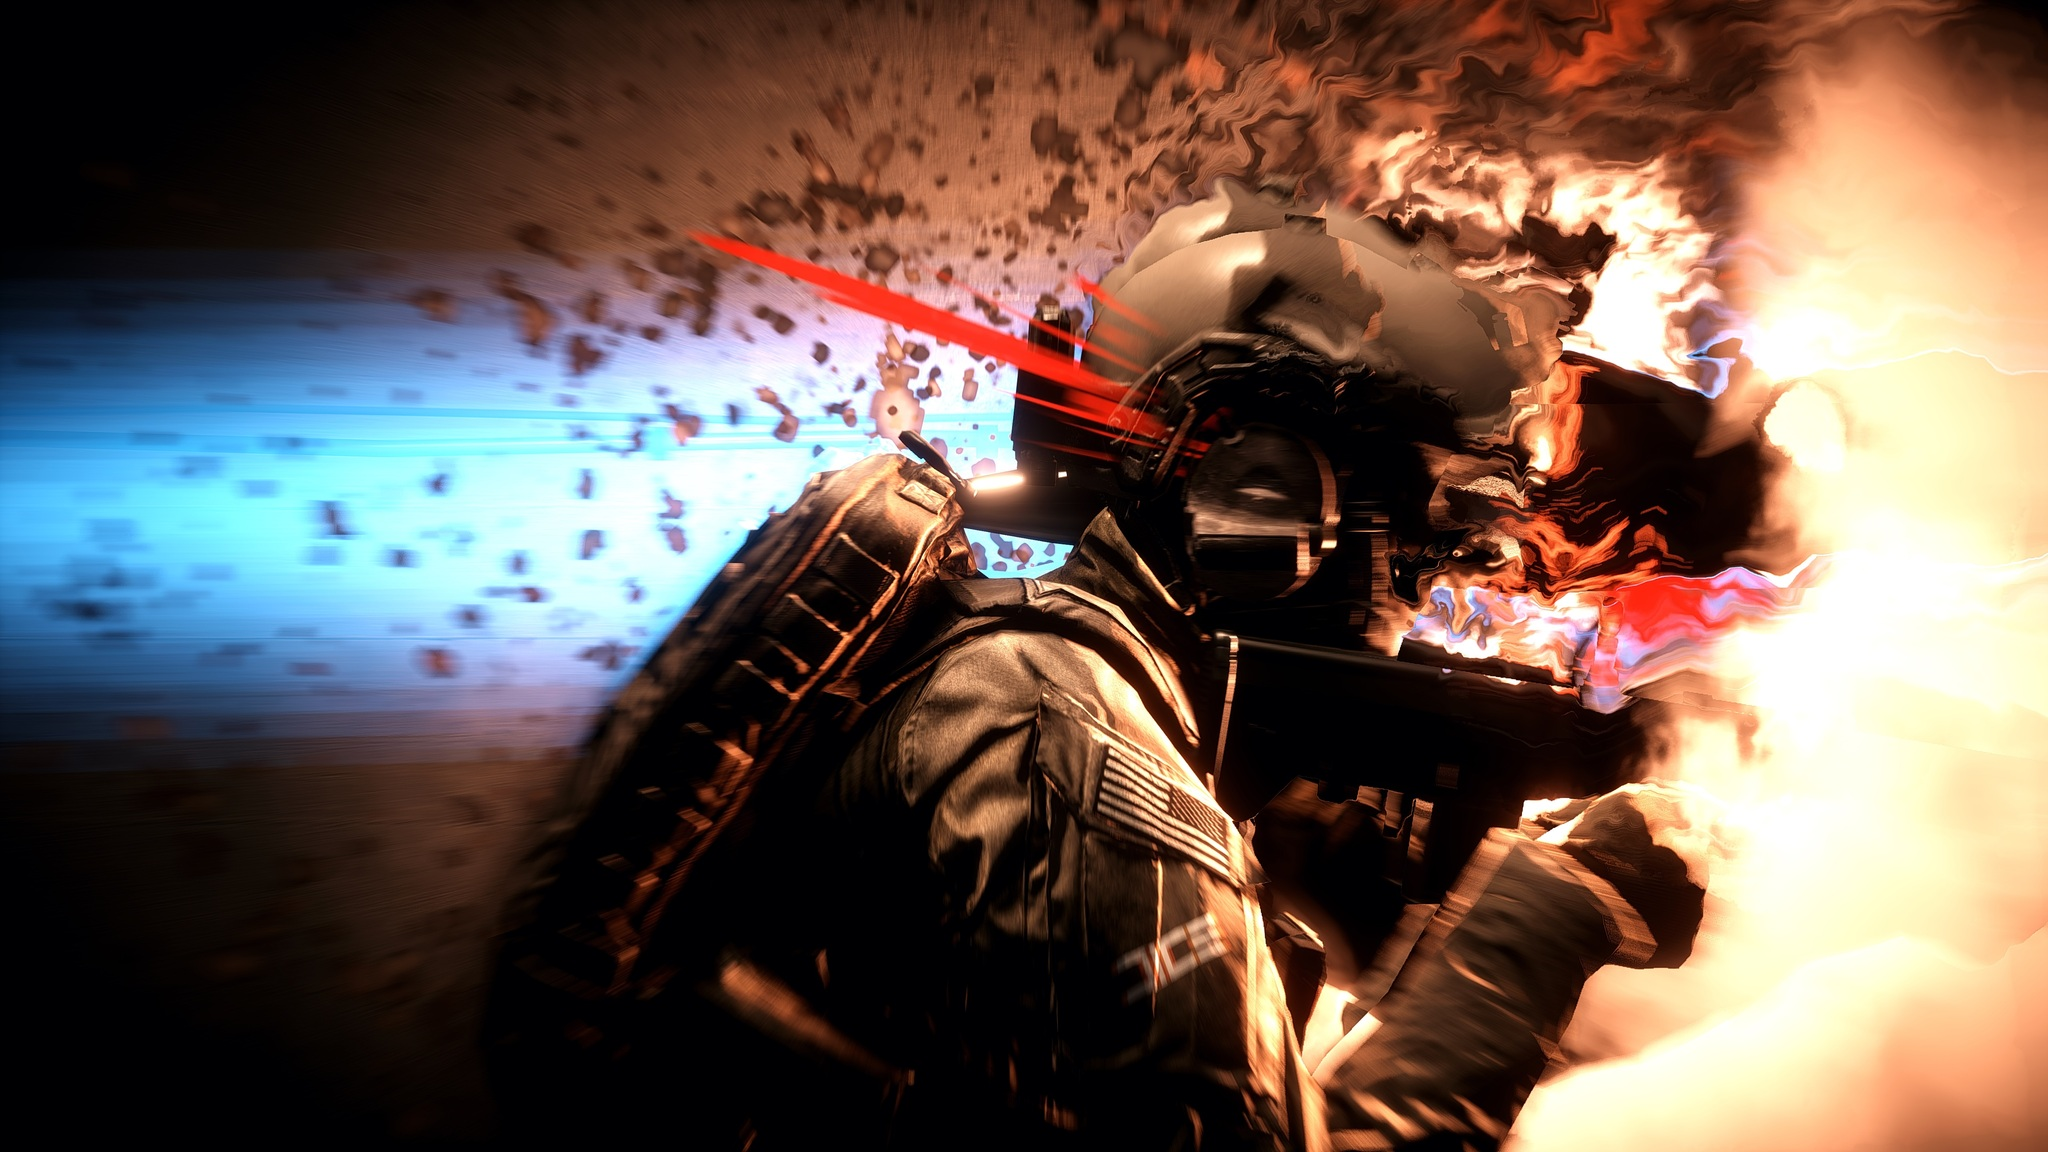 2048x1152 Battlefield 4 Soldier 5k 2048x1152 Resolution HD